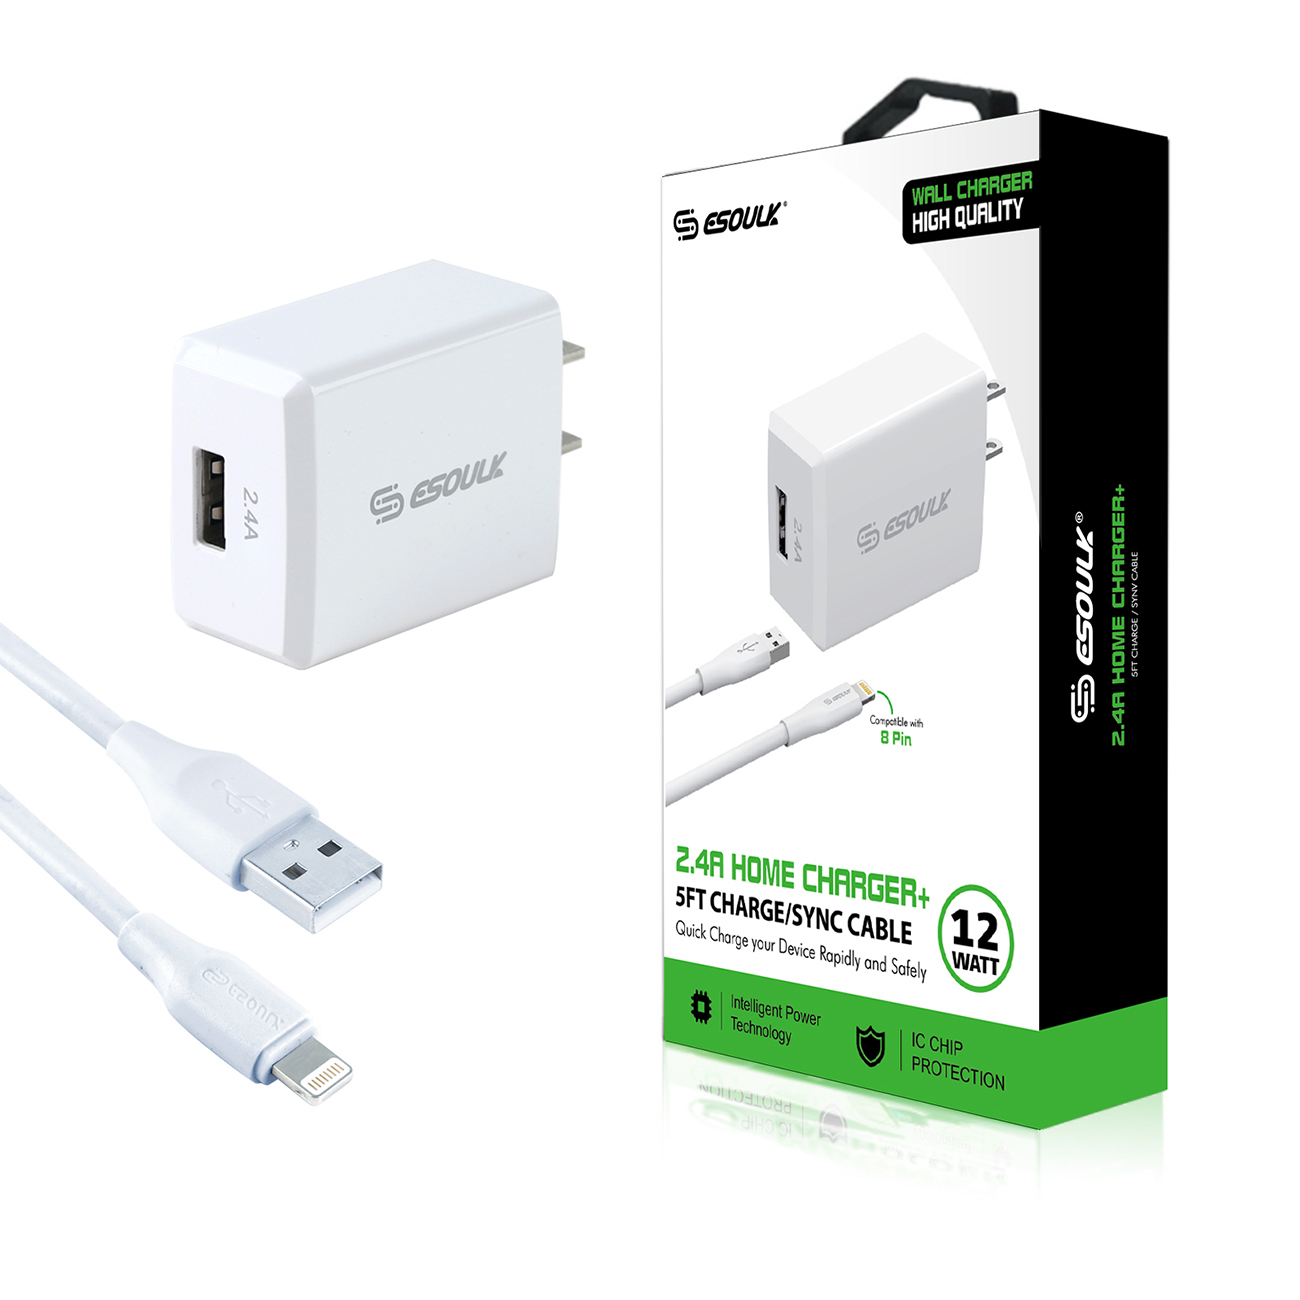 12W 2.4A Wall Charger & 5ft Cable For 8 PIN In White